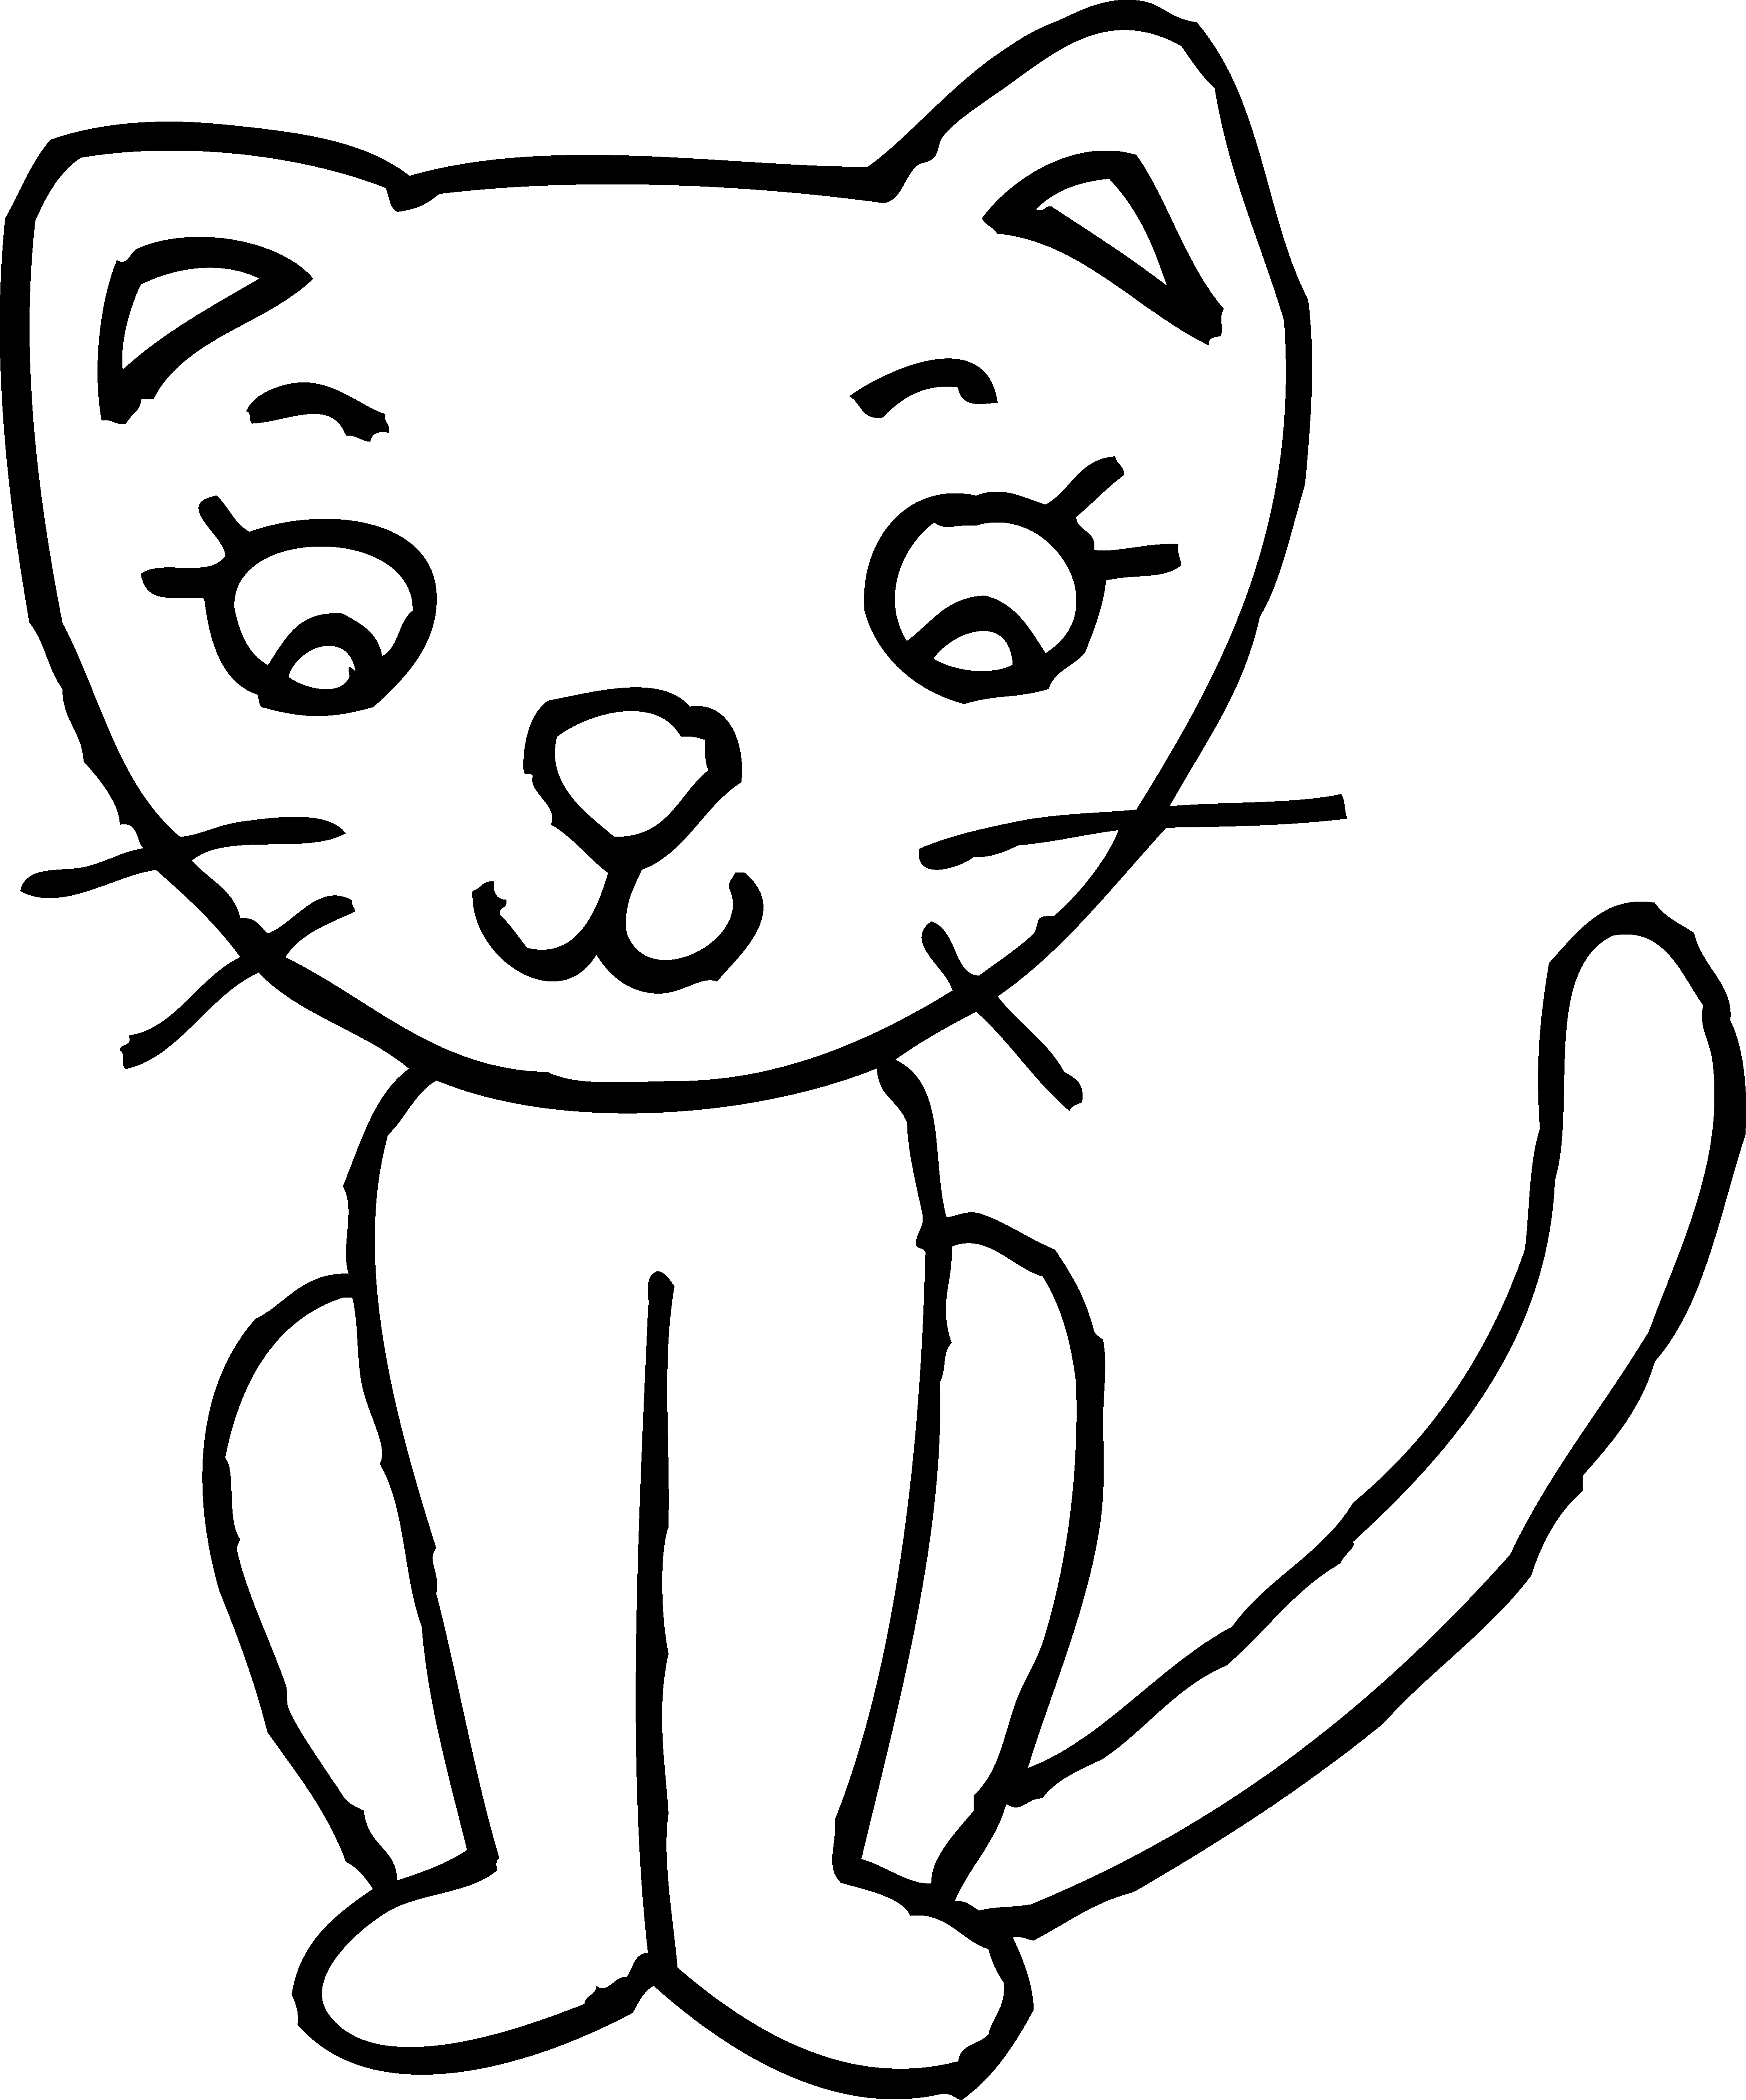 Line Drawing Of A Cat Face : Cat face line drawing clipart best